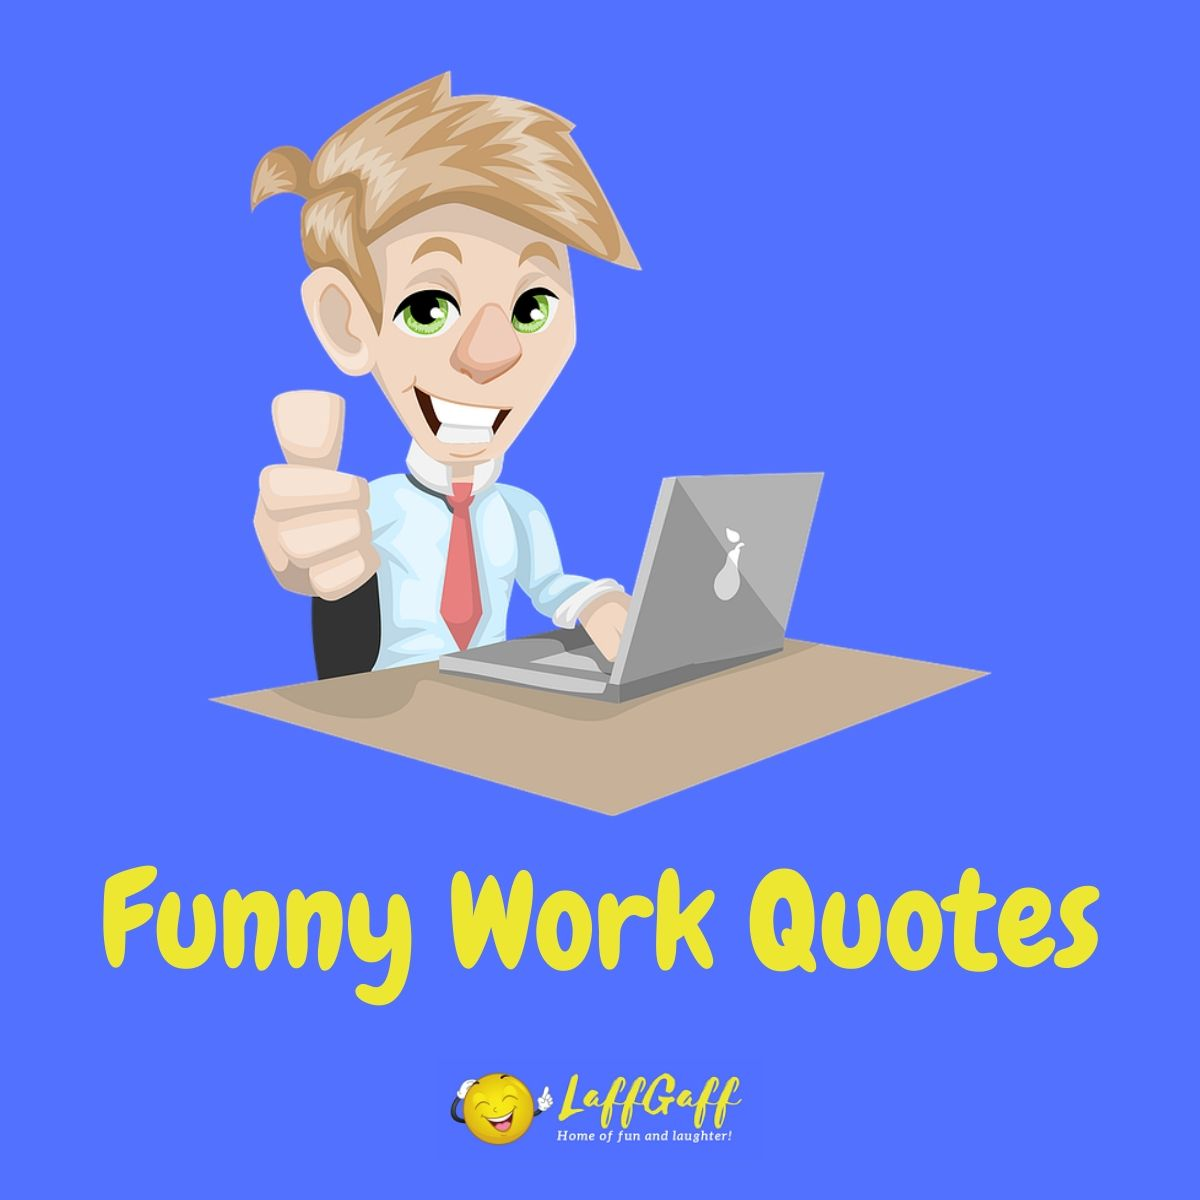 Featured image for a page of funny work quotes.